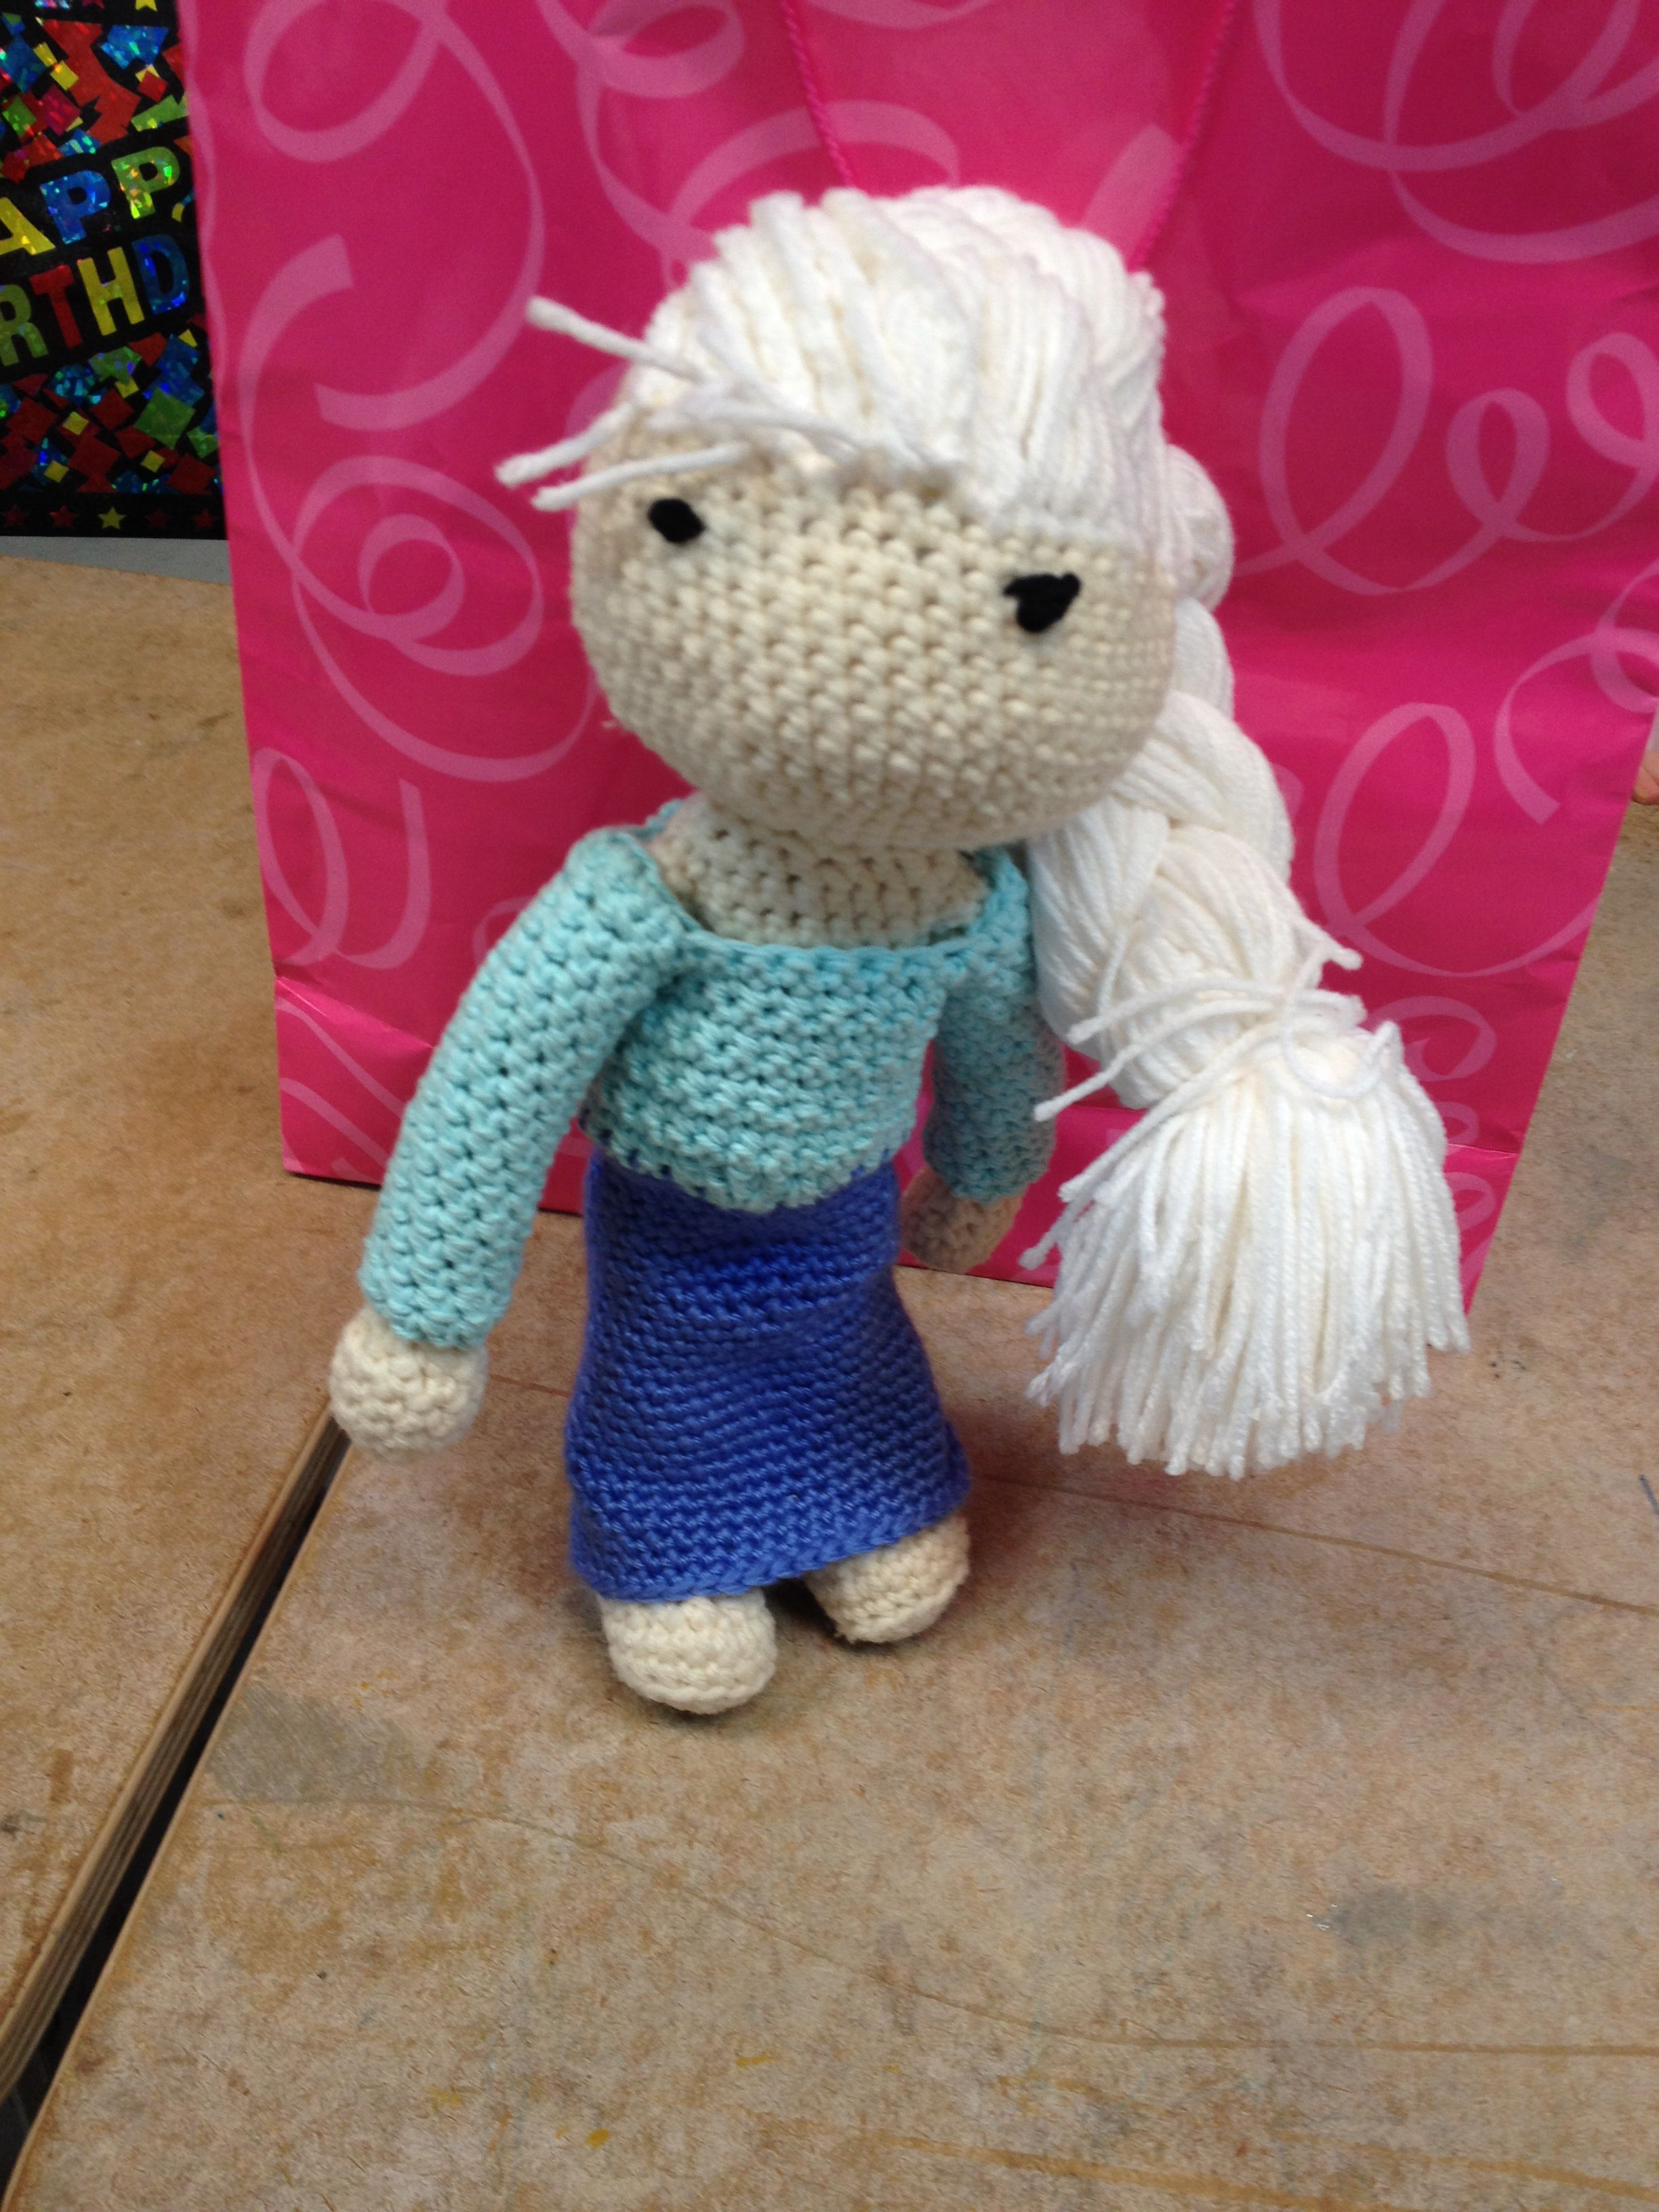 I made this Elsa doll for my niece